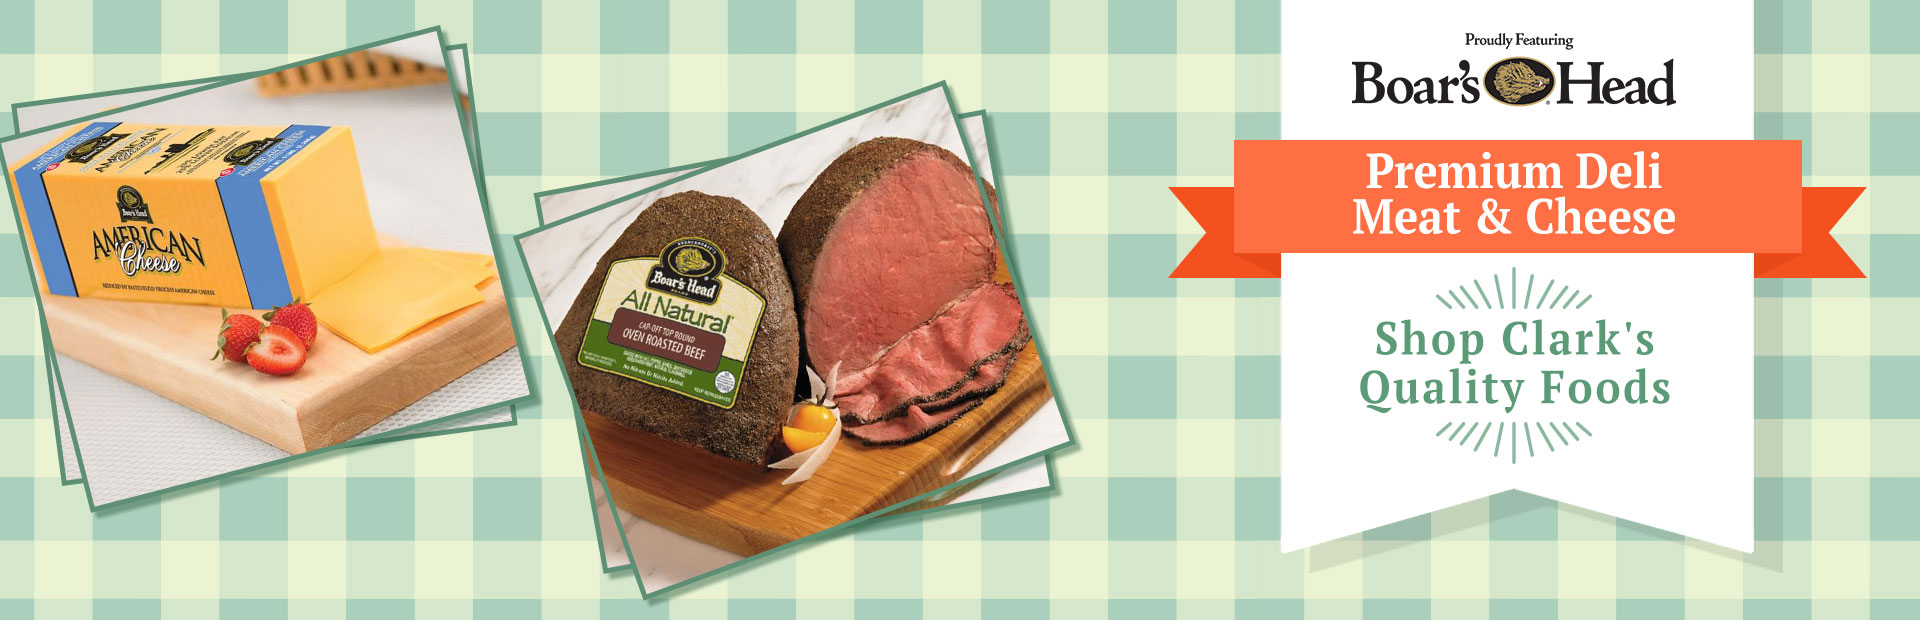 Boar's Head Premium Deli Meat & Cheese